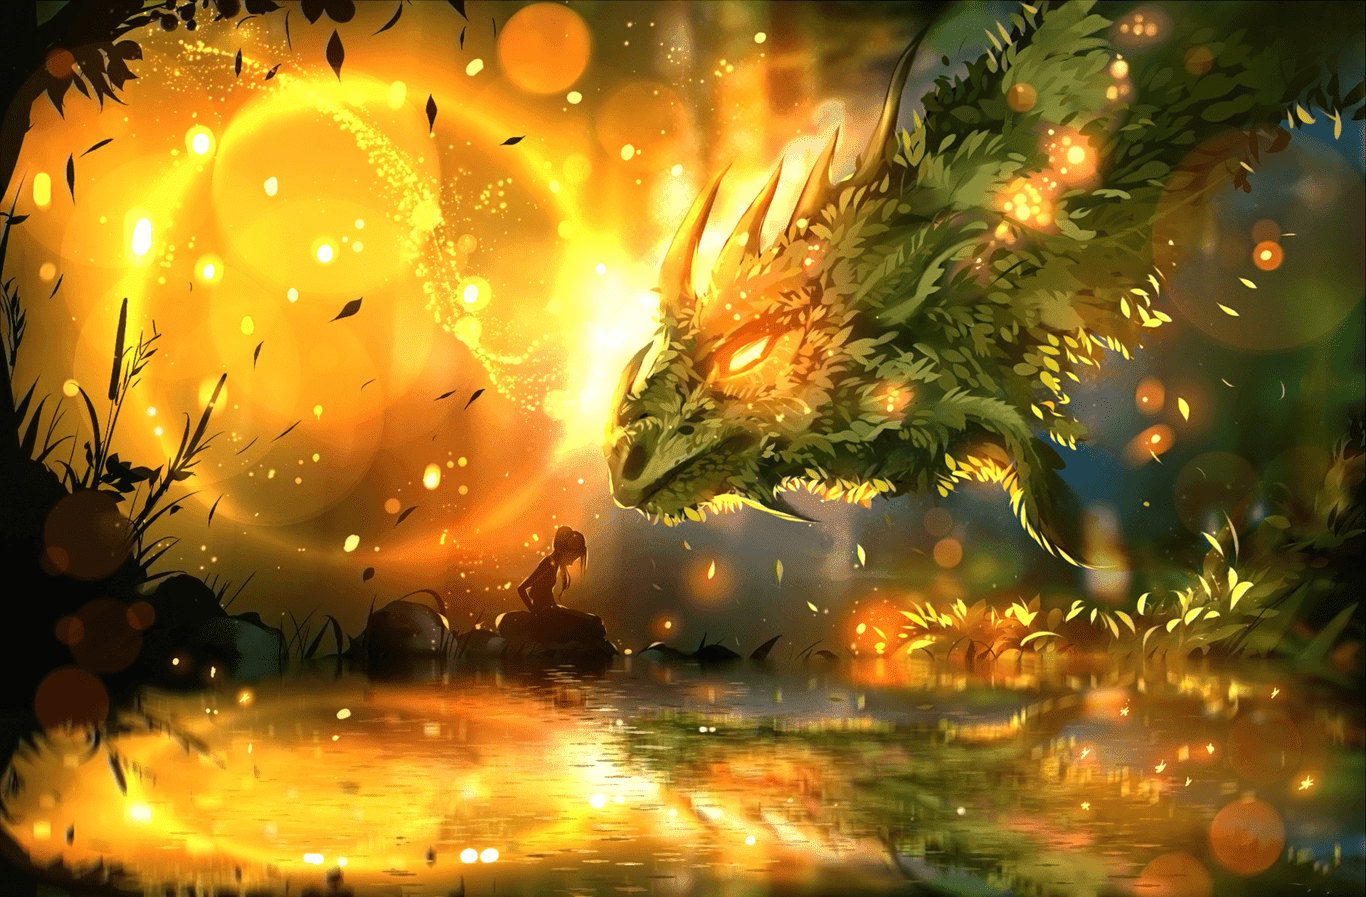 Dragon Wallpaper Desktop Full HD 3D, 4K Ultra.